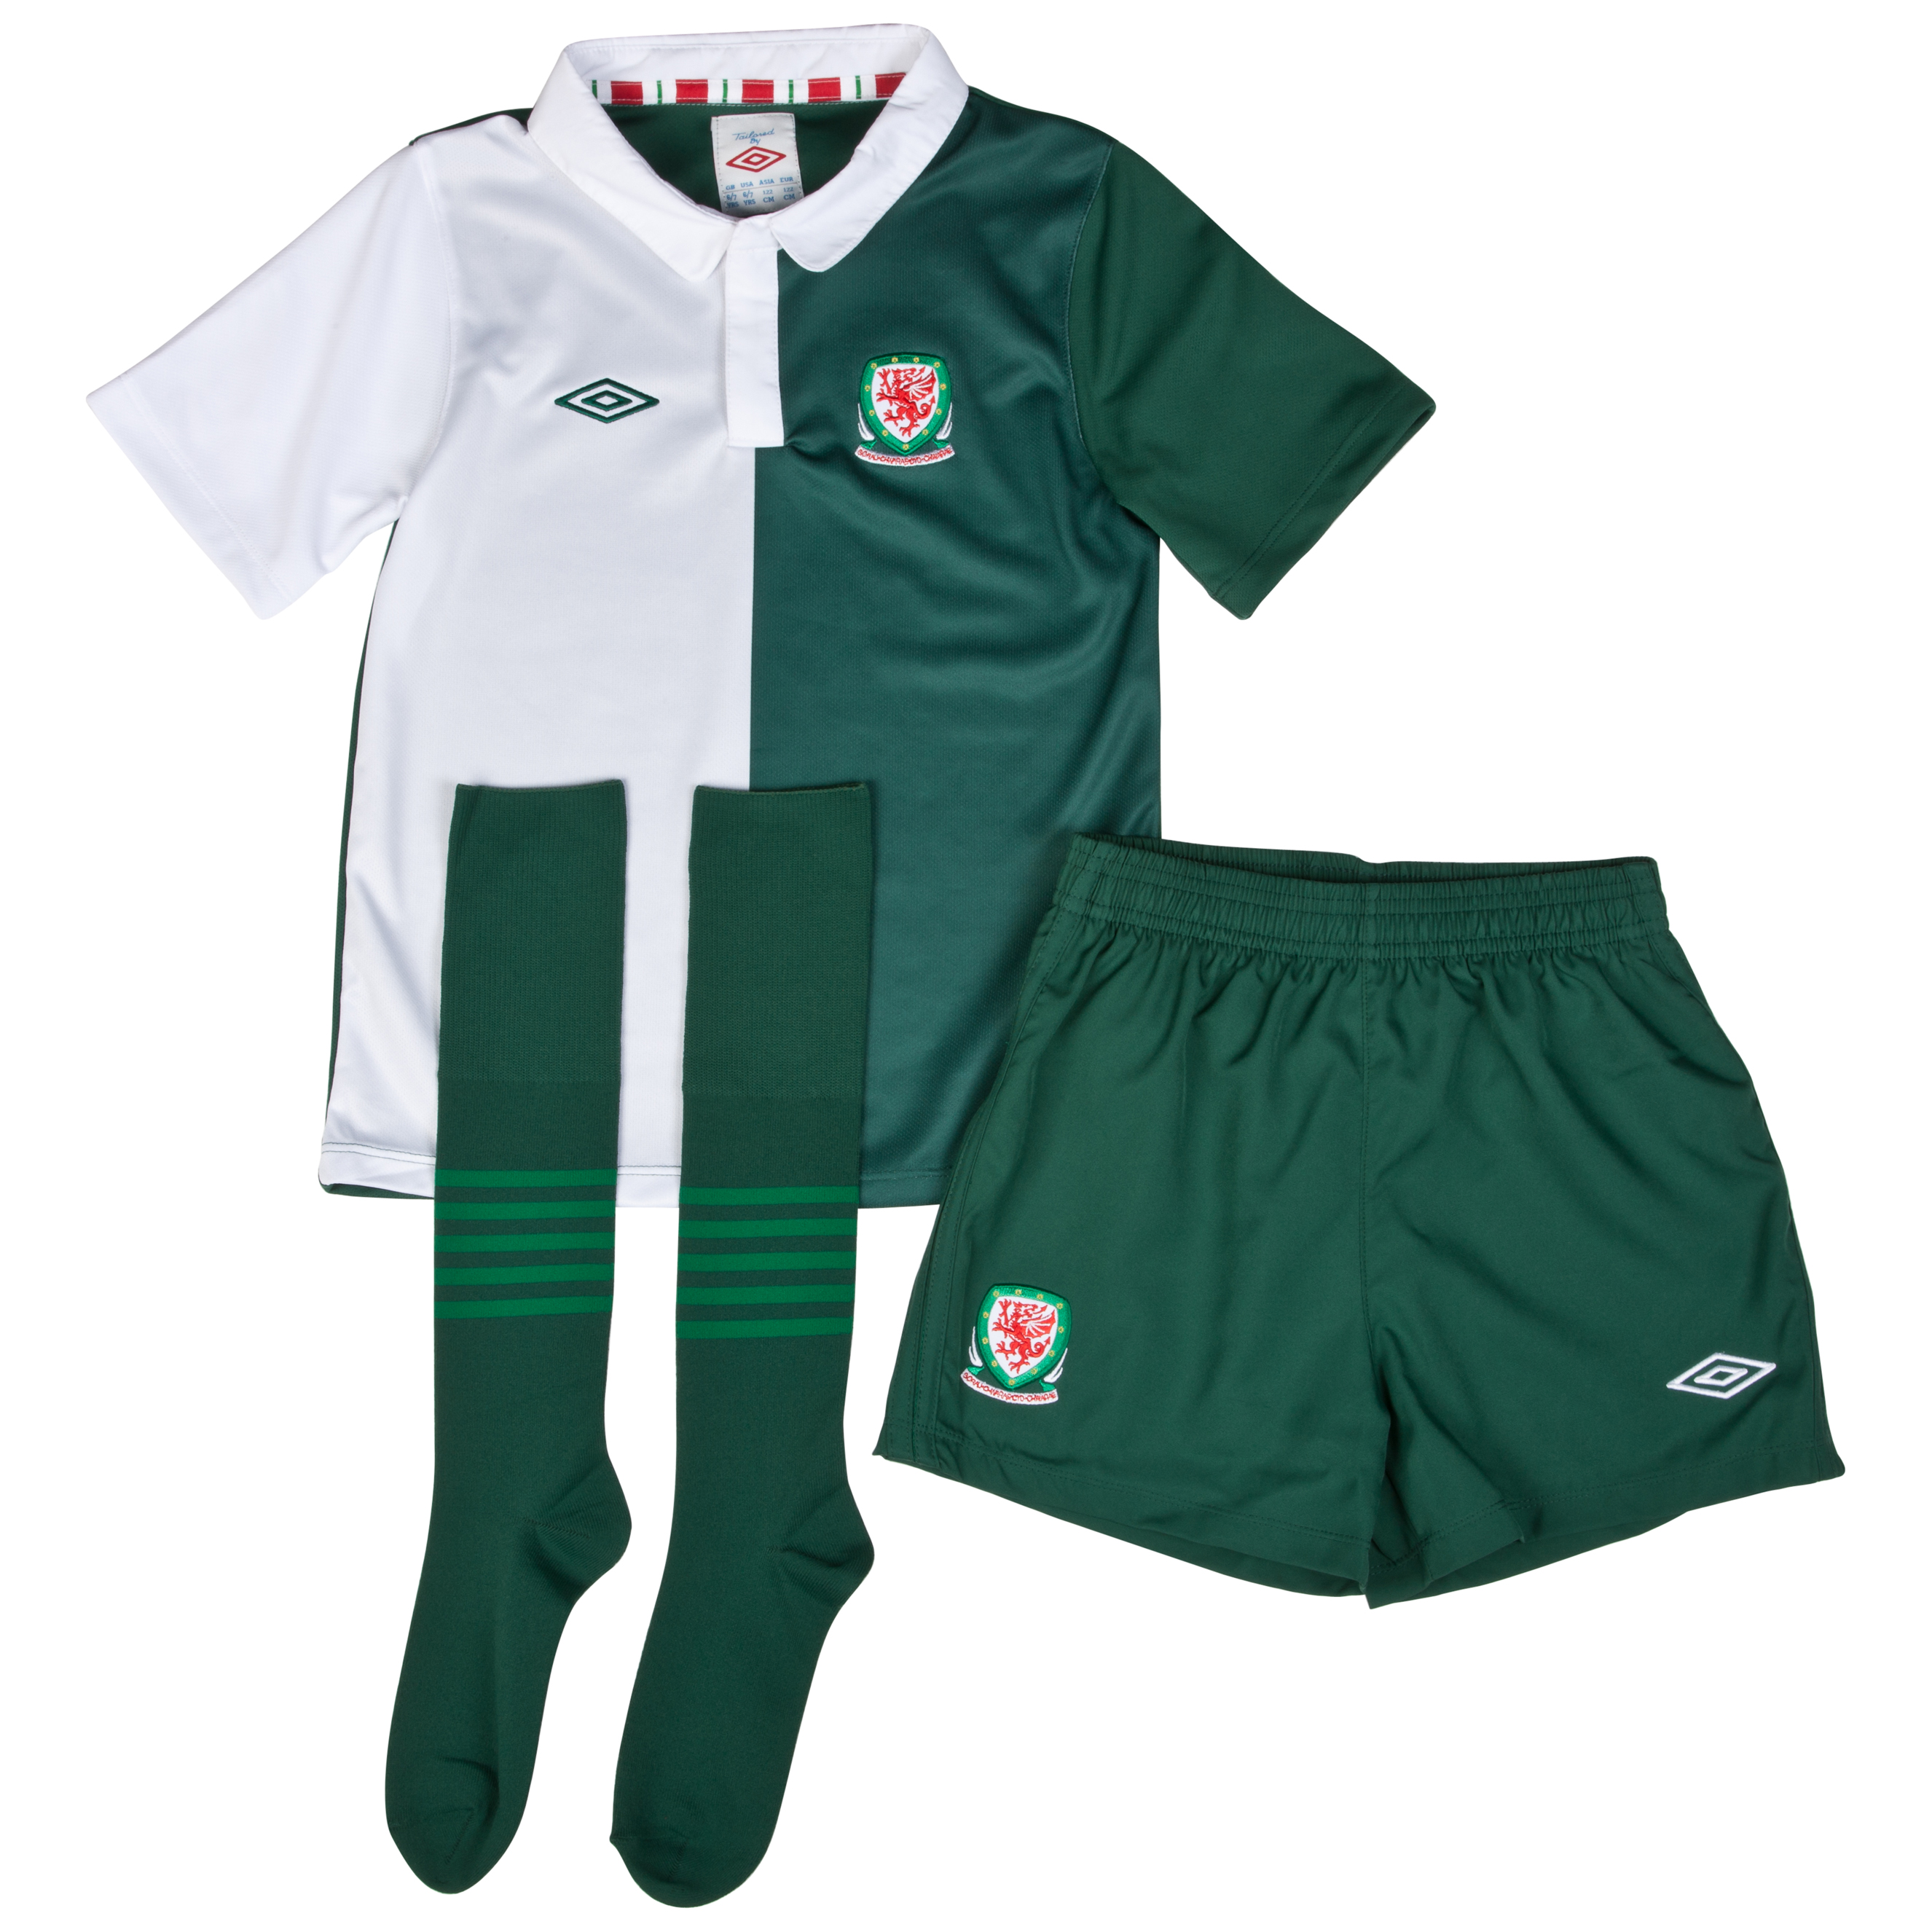 Wales Away Infant Kit 2012/13